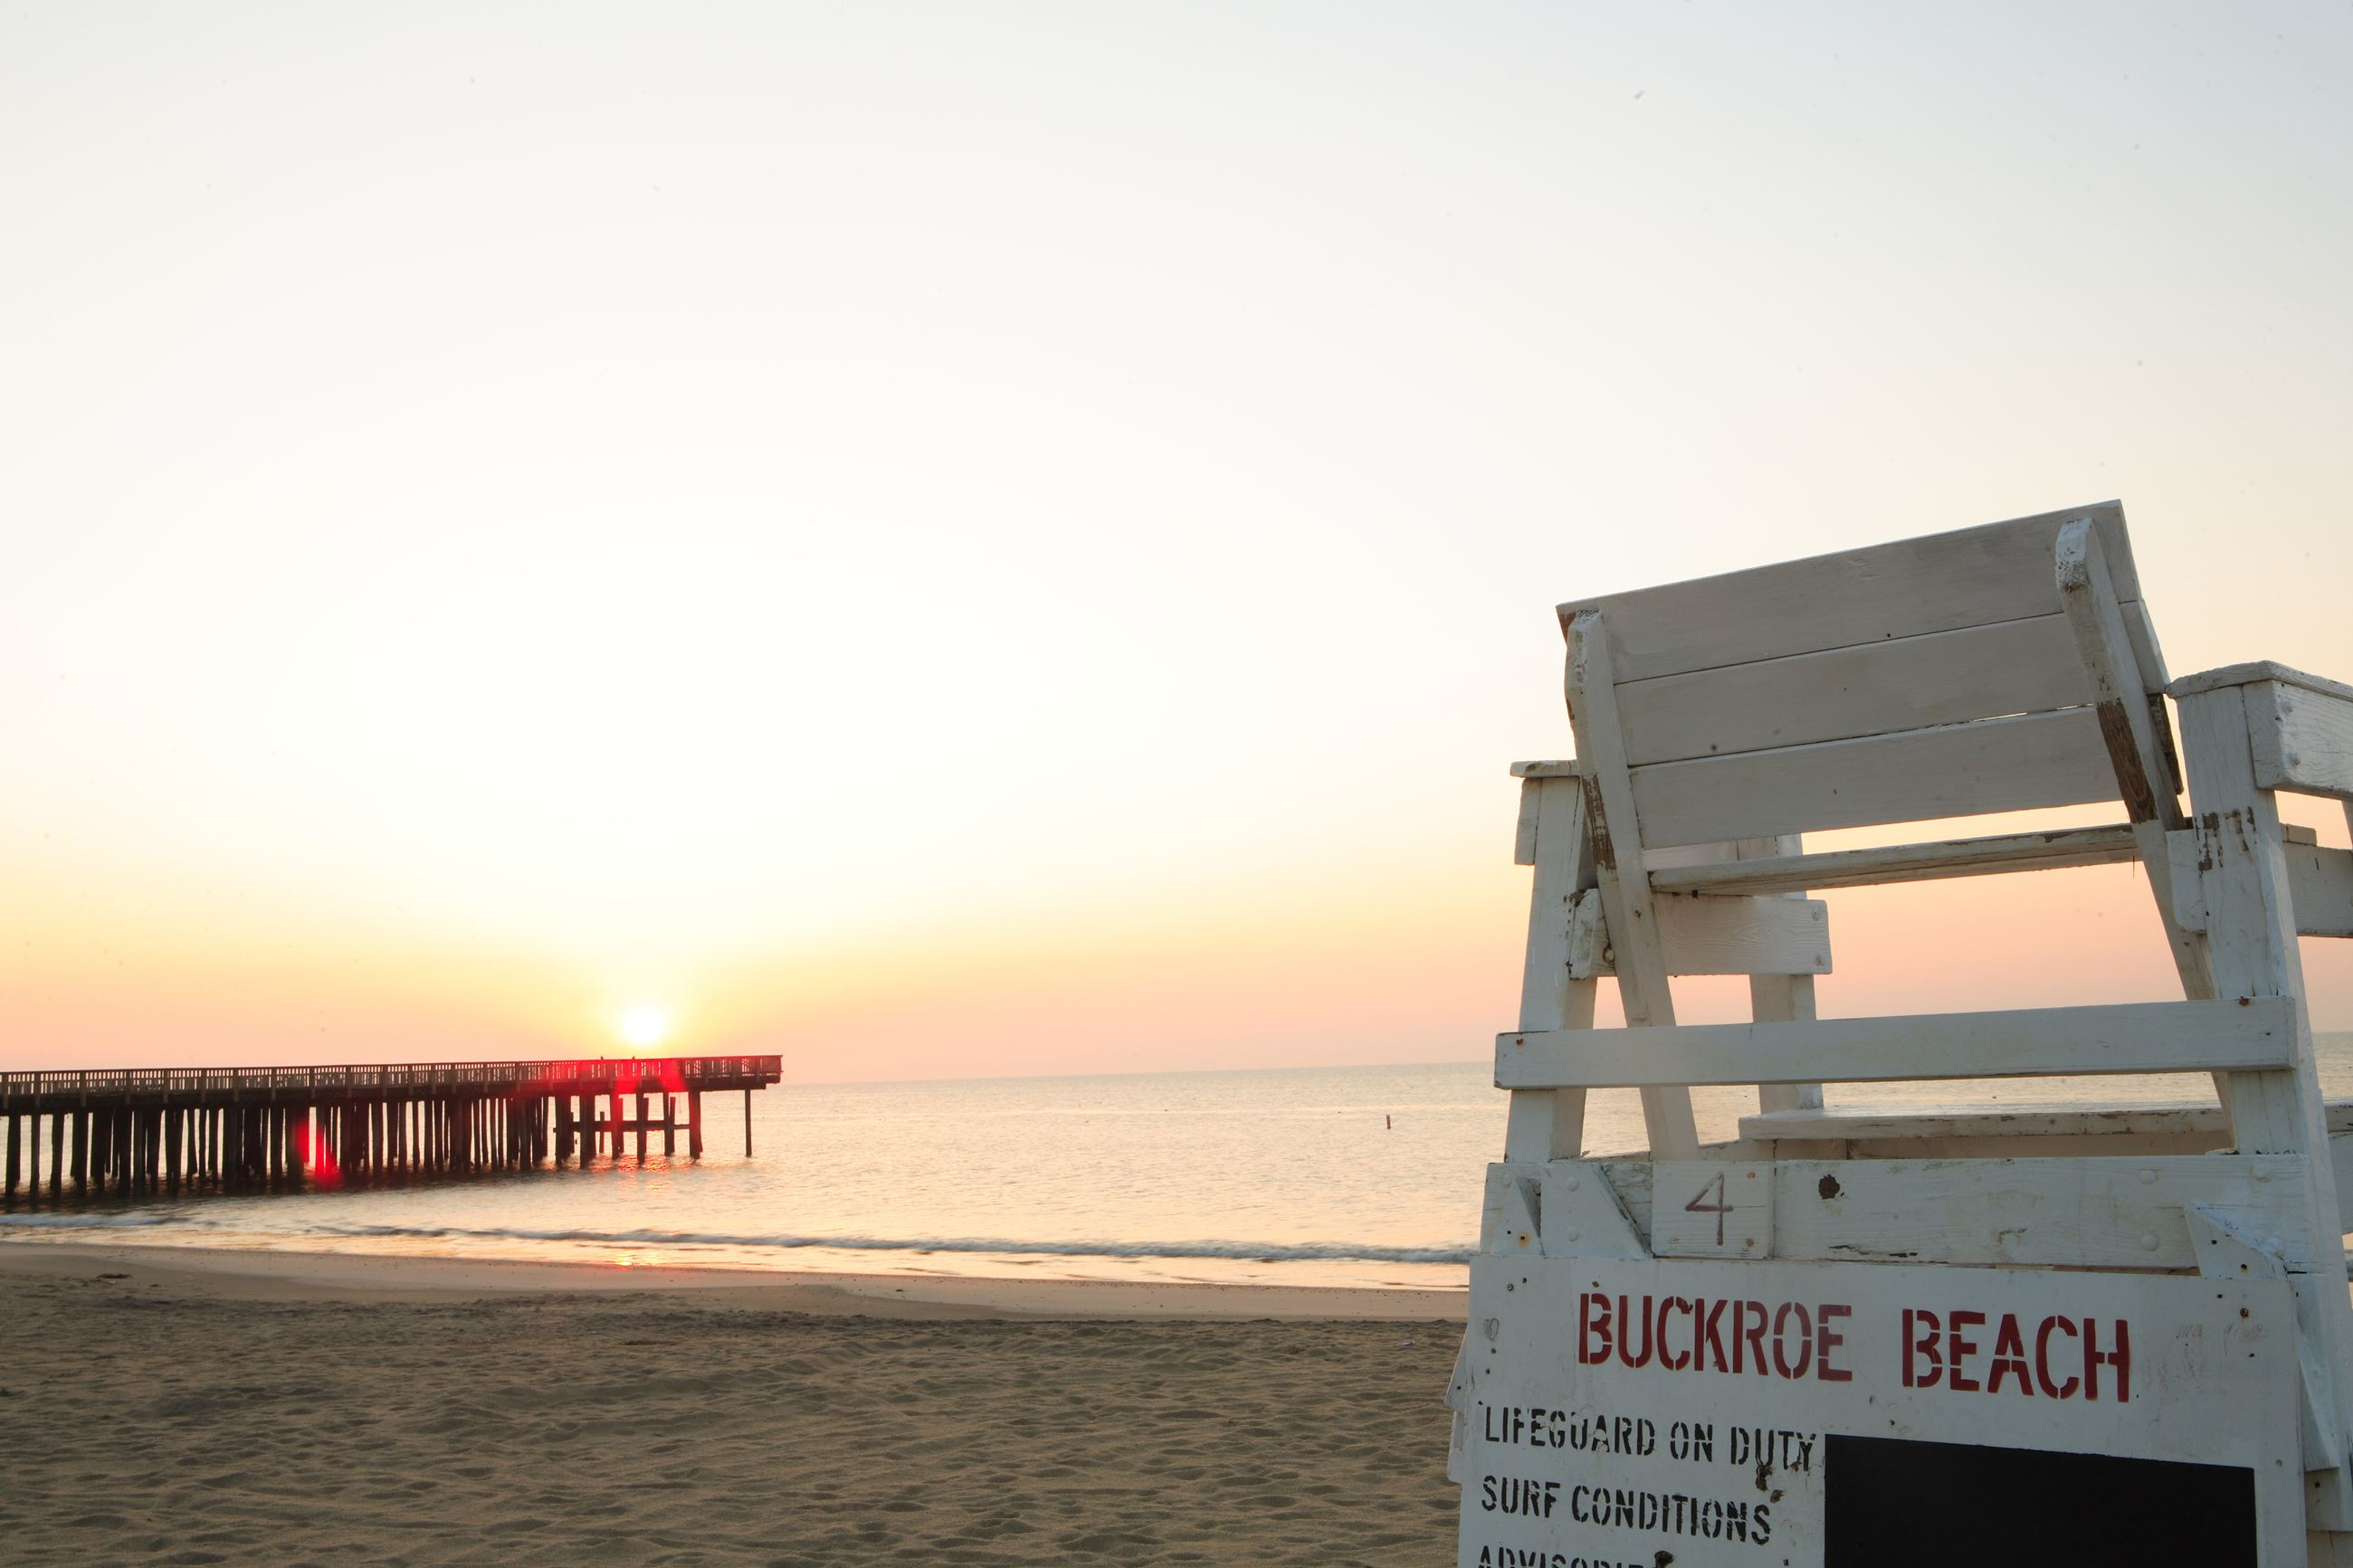 Buckroe Beach Lifeguard stand